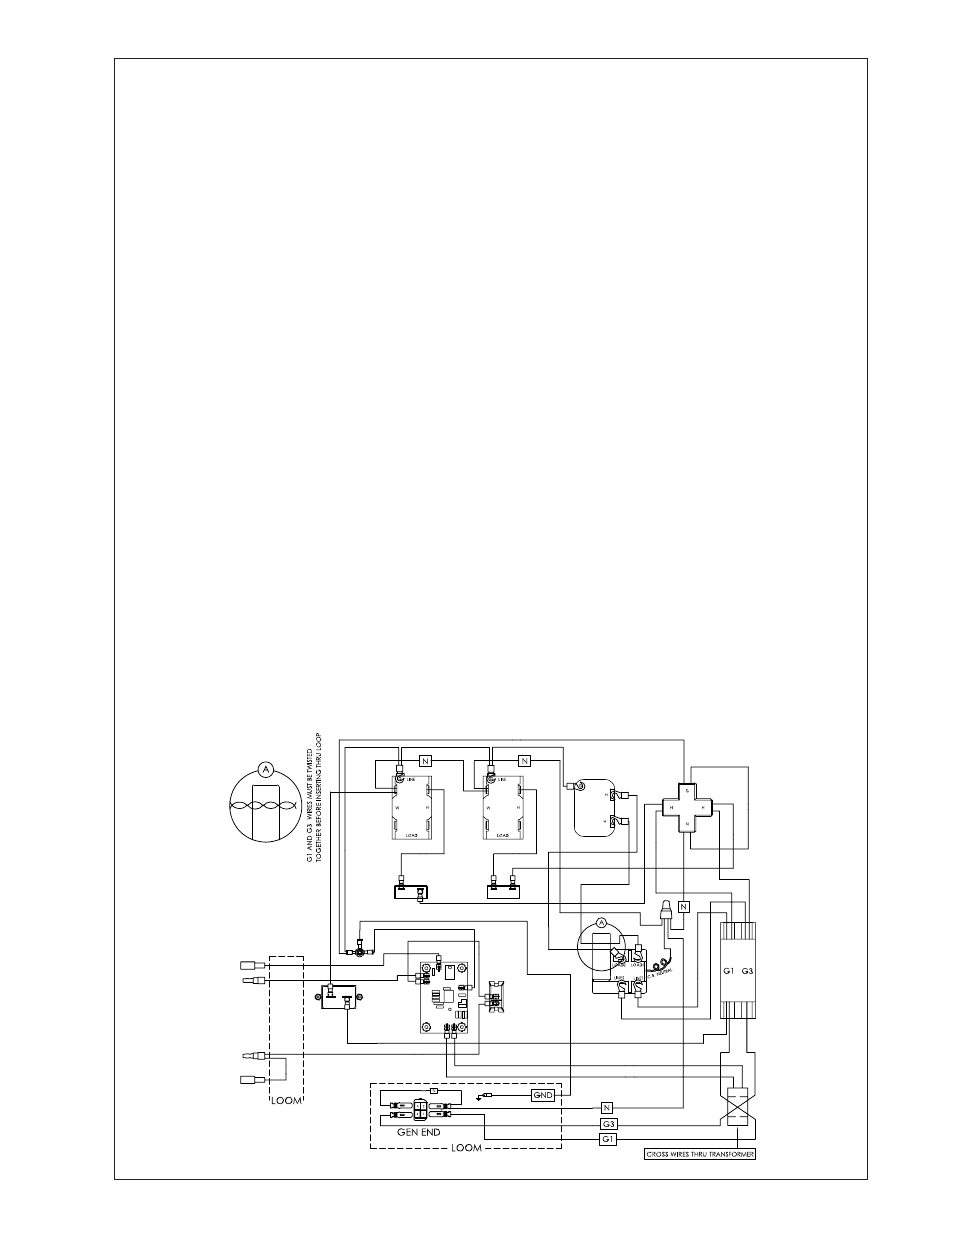 medium resolution of wiring diagram troubleshooting hints winco wc10000ve user manual page 11 12